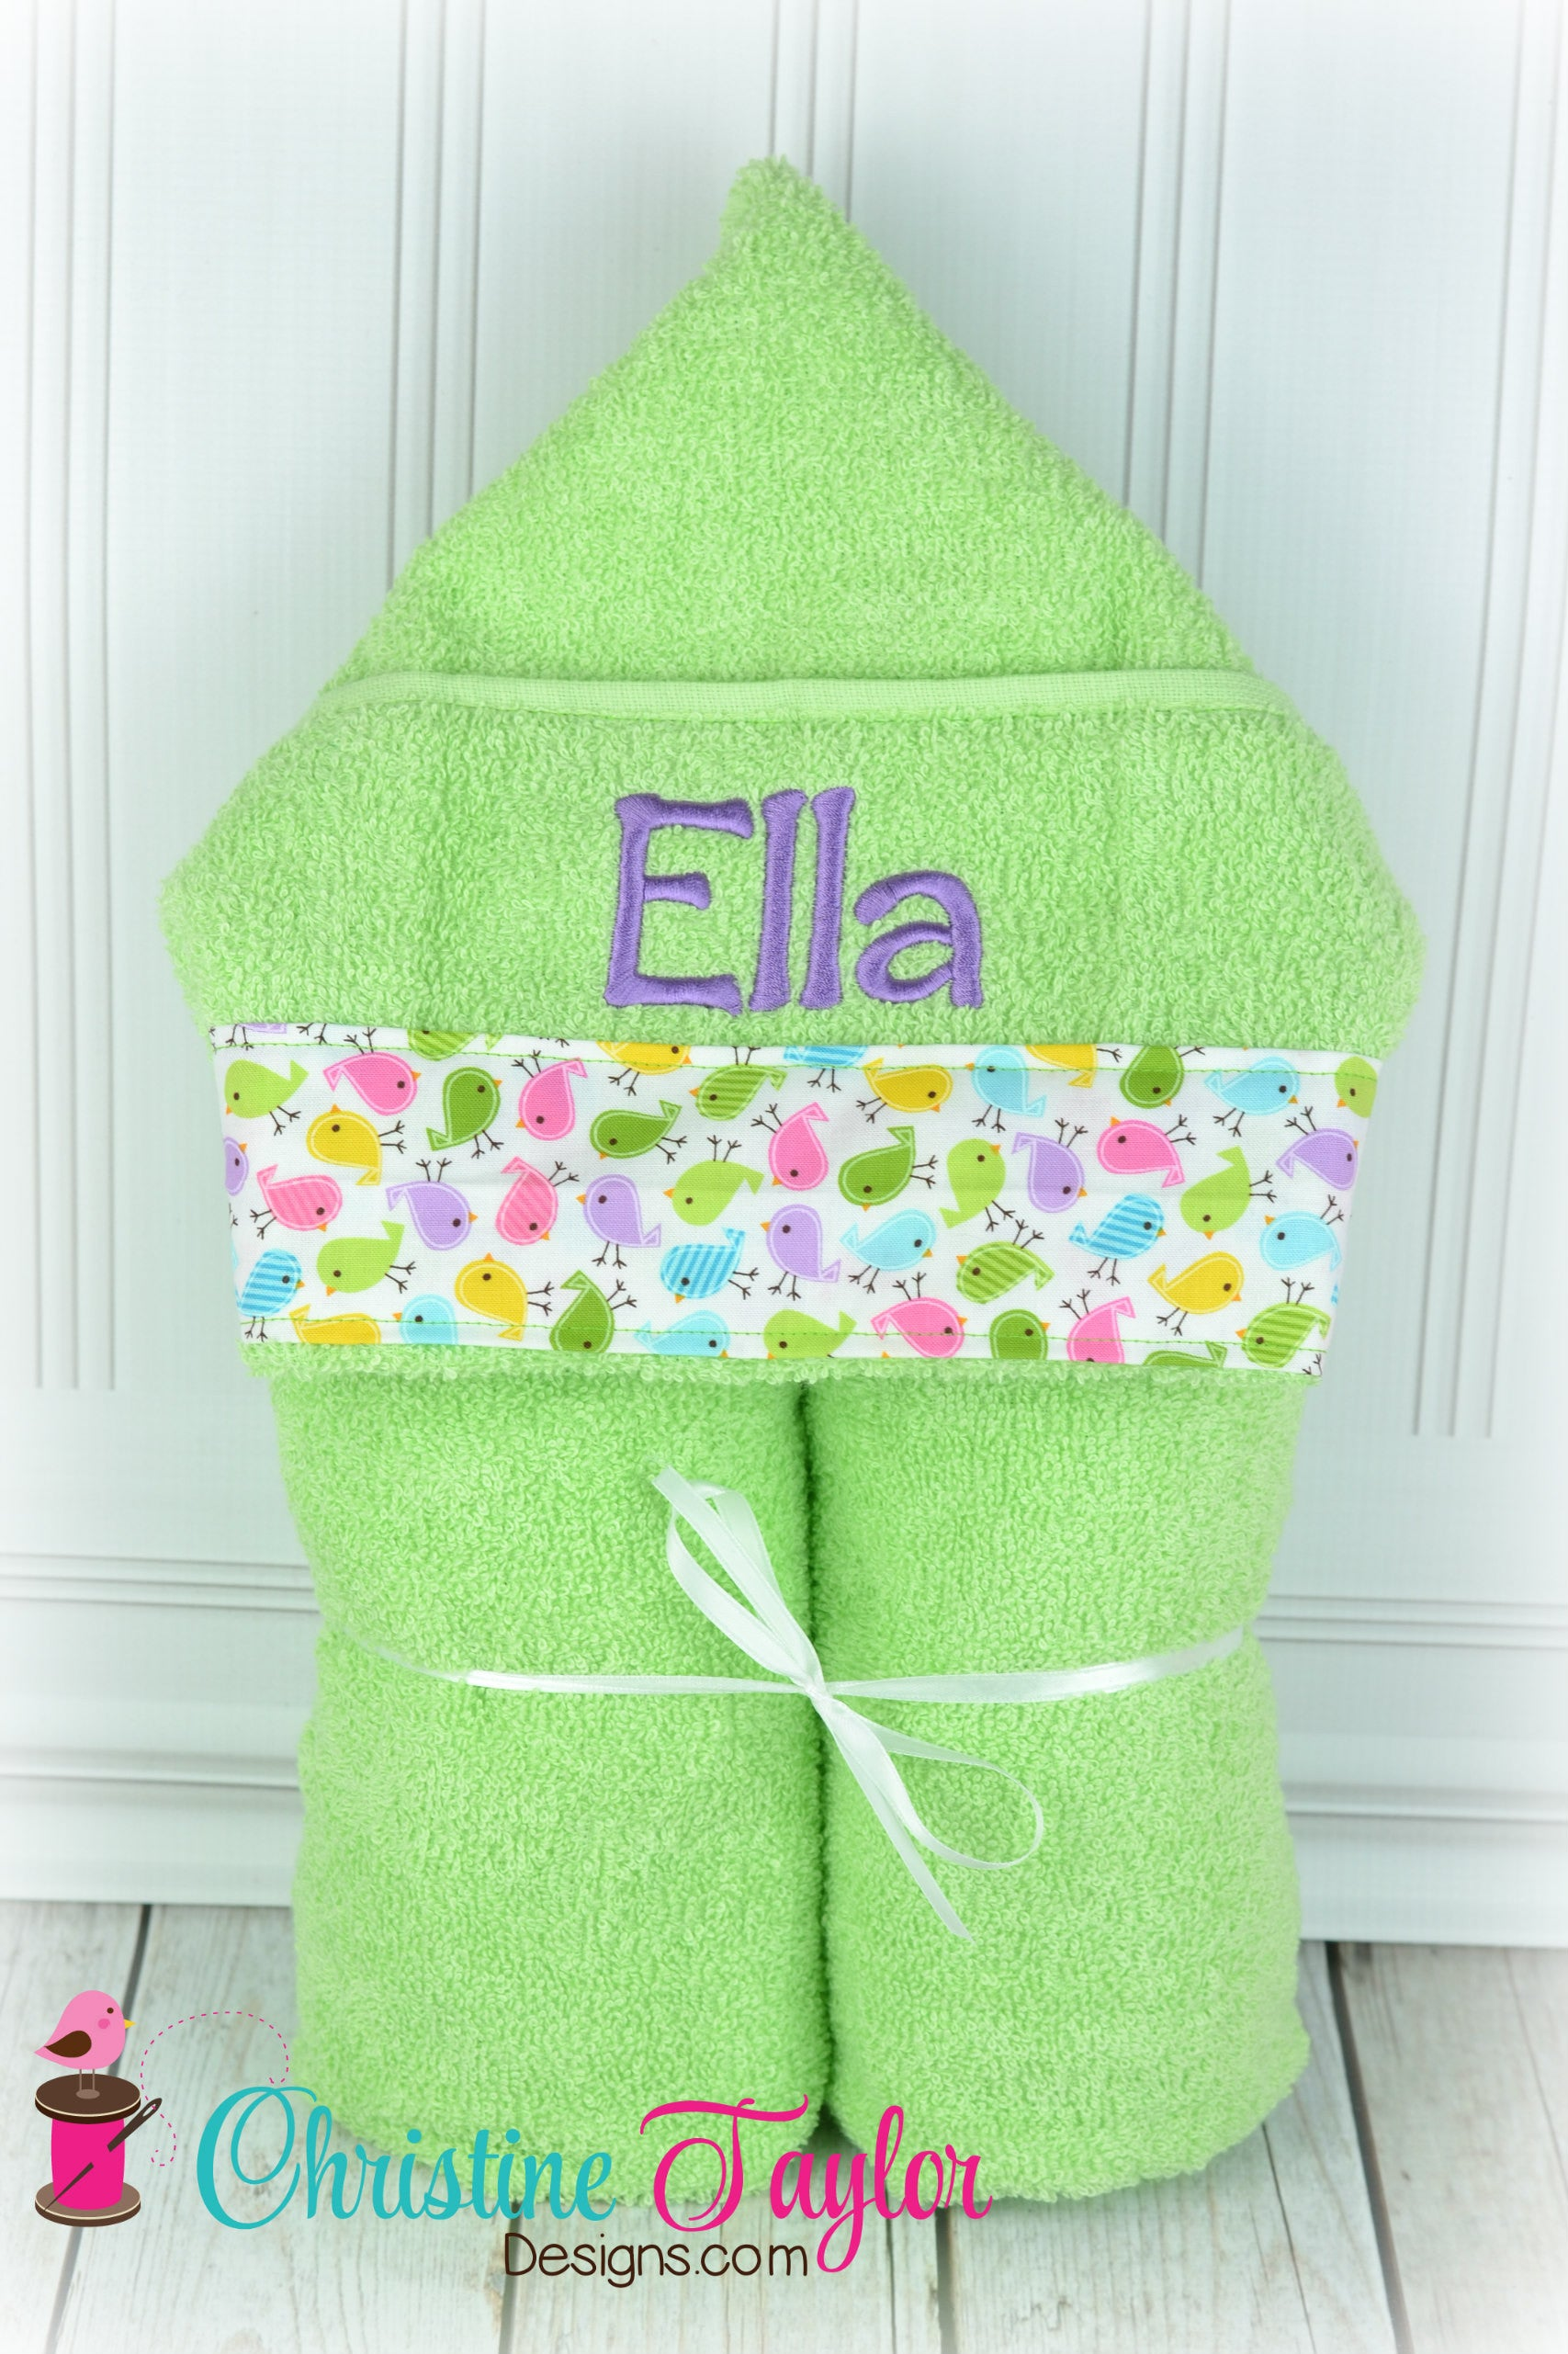 NEW Hooded Towel - Create your Own - Christine Taylor Designs